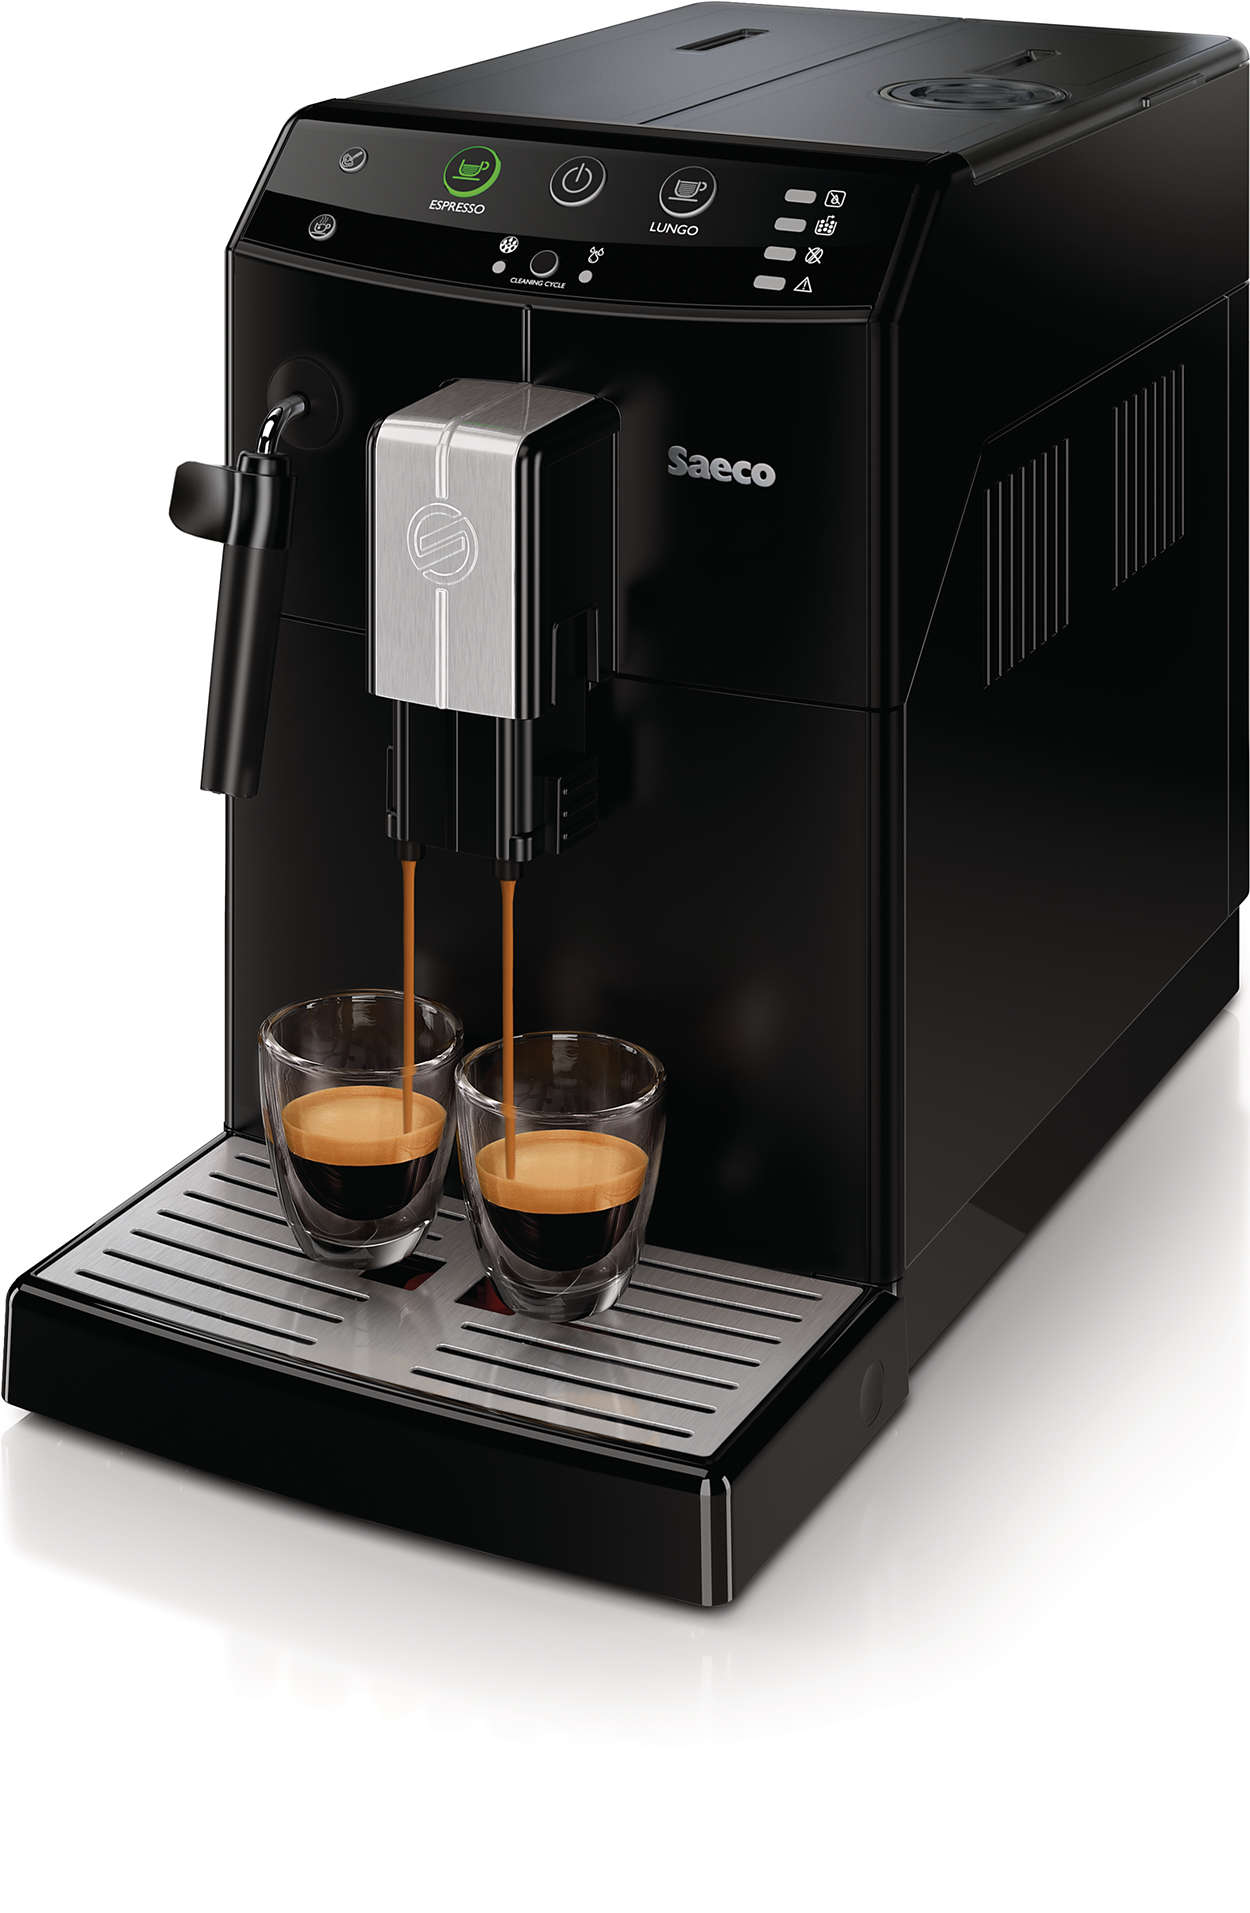 Minuto Super-automatic espresso machine HD8765/47 | Saeco